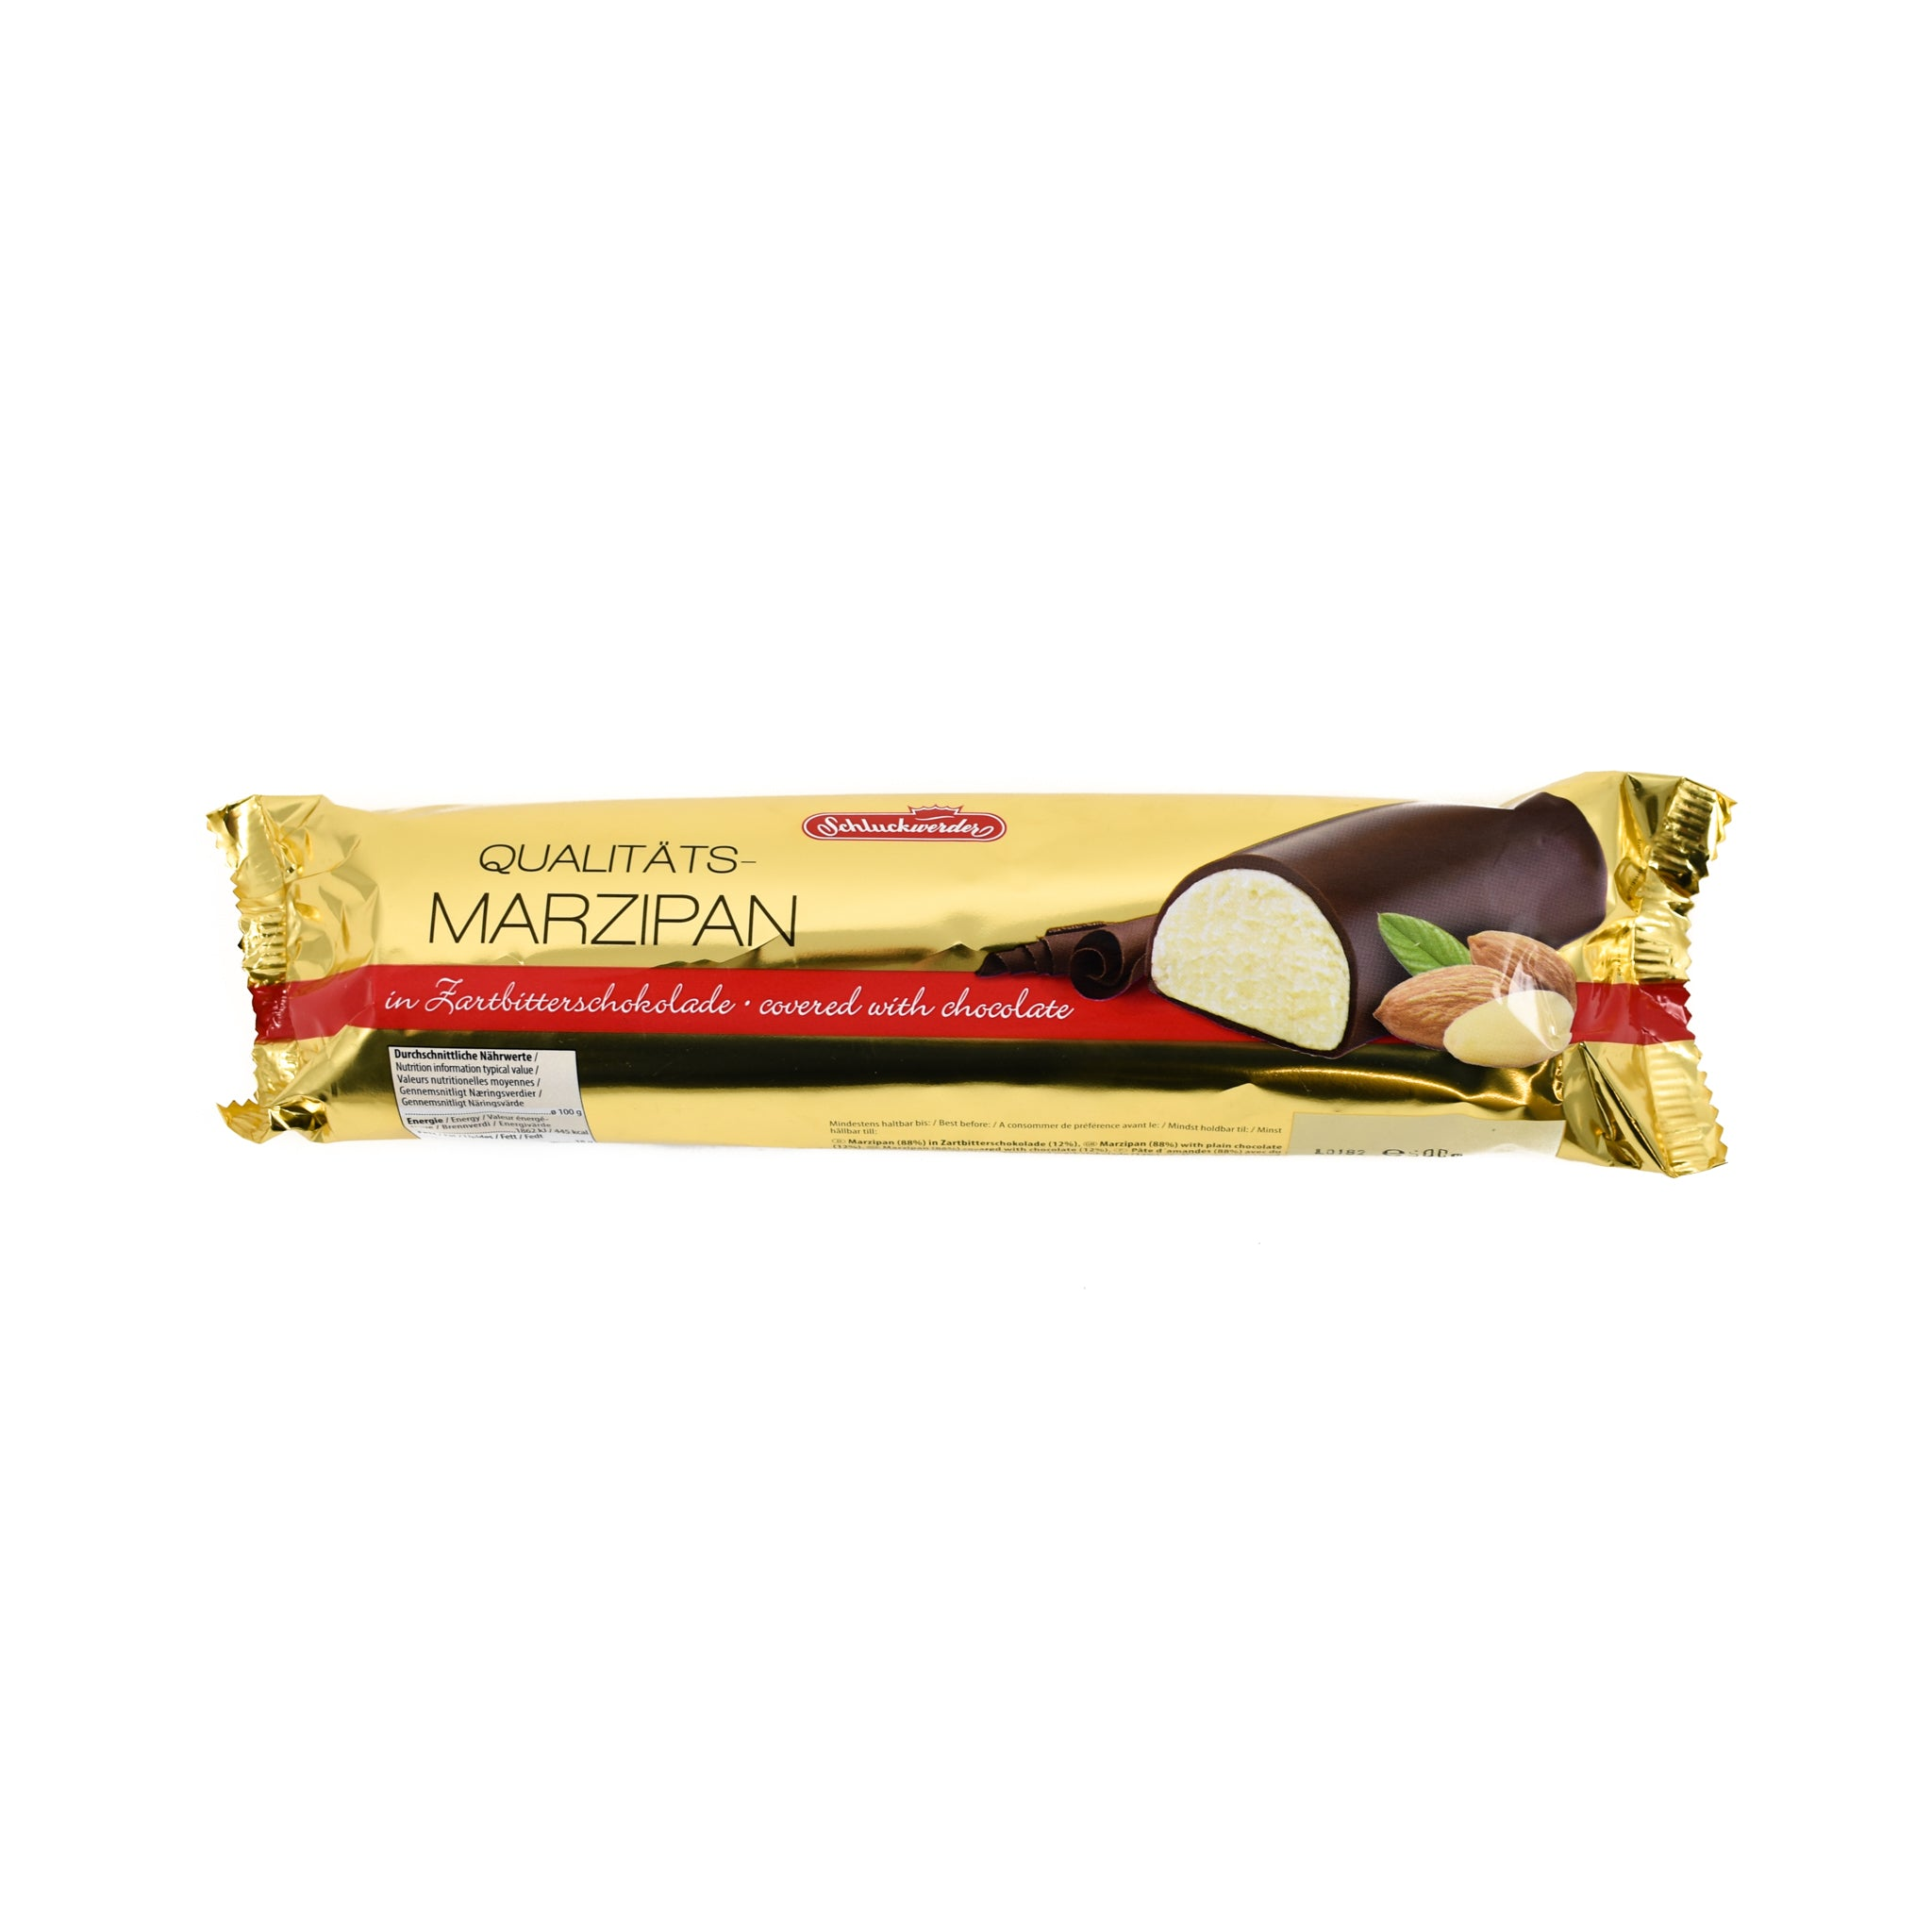 Schluckwerder Dark Chocolate Covered Marzipan Bar 500g Ingredients Chocolate Bars & Confectionery German Food